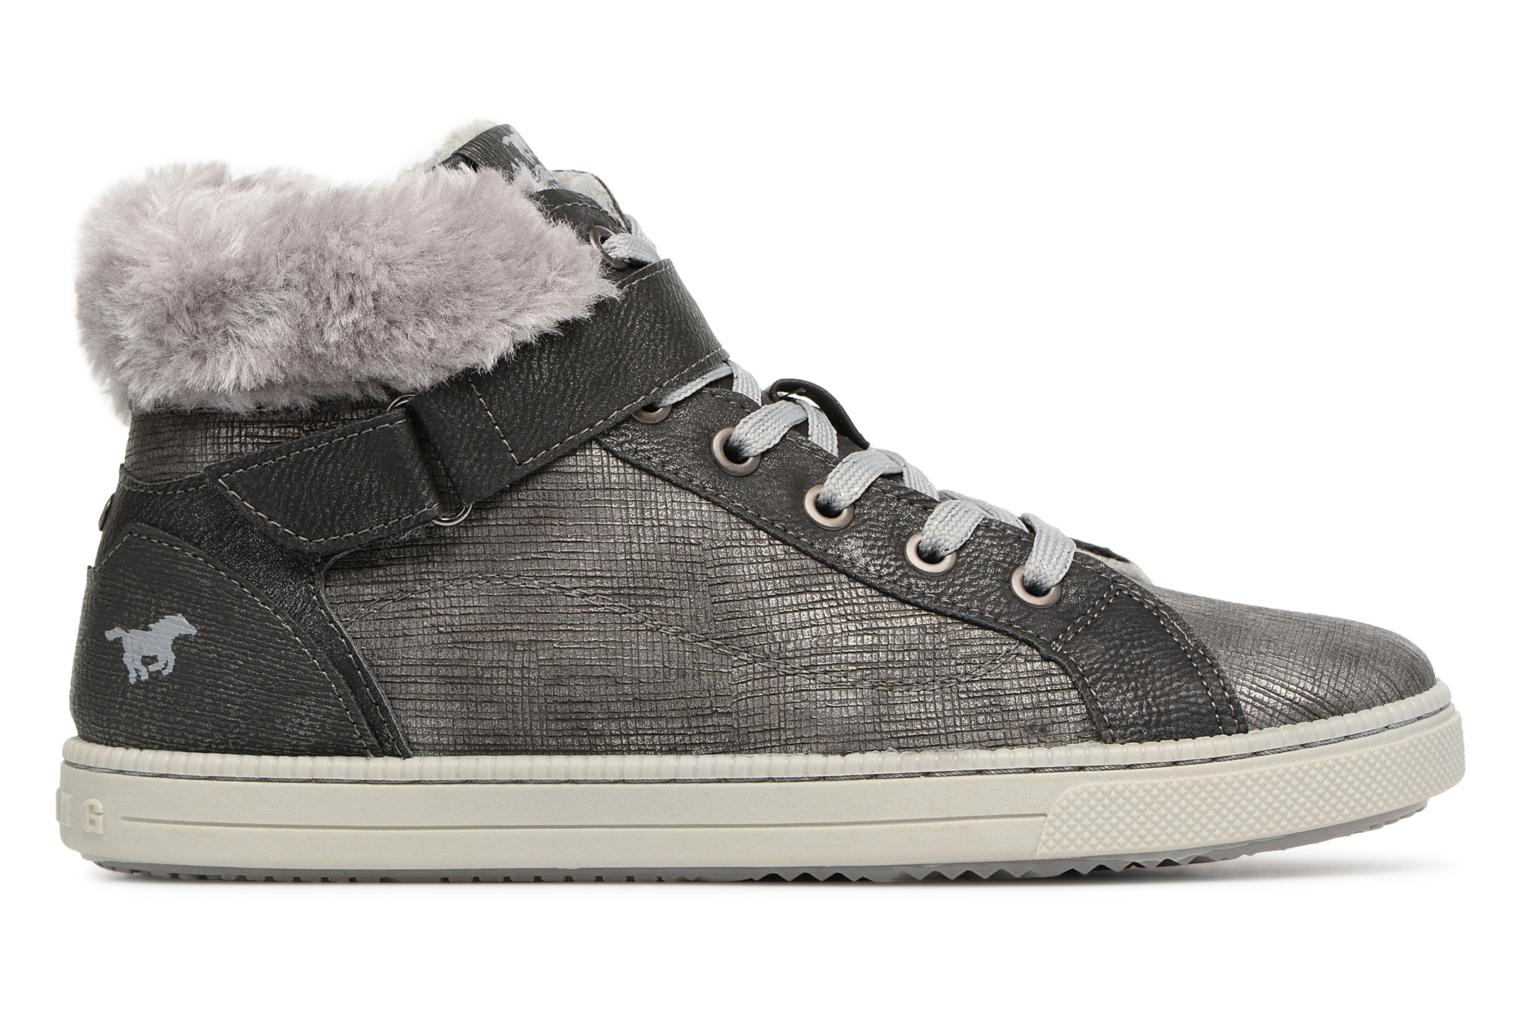 ... 259 graphit Mustang shoes 5042604 Kinder High Top Sneaker (Gris) ...